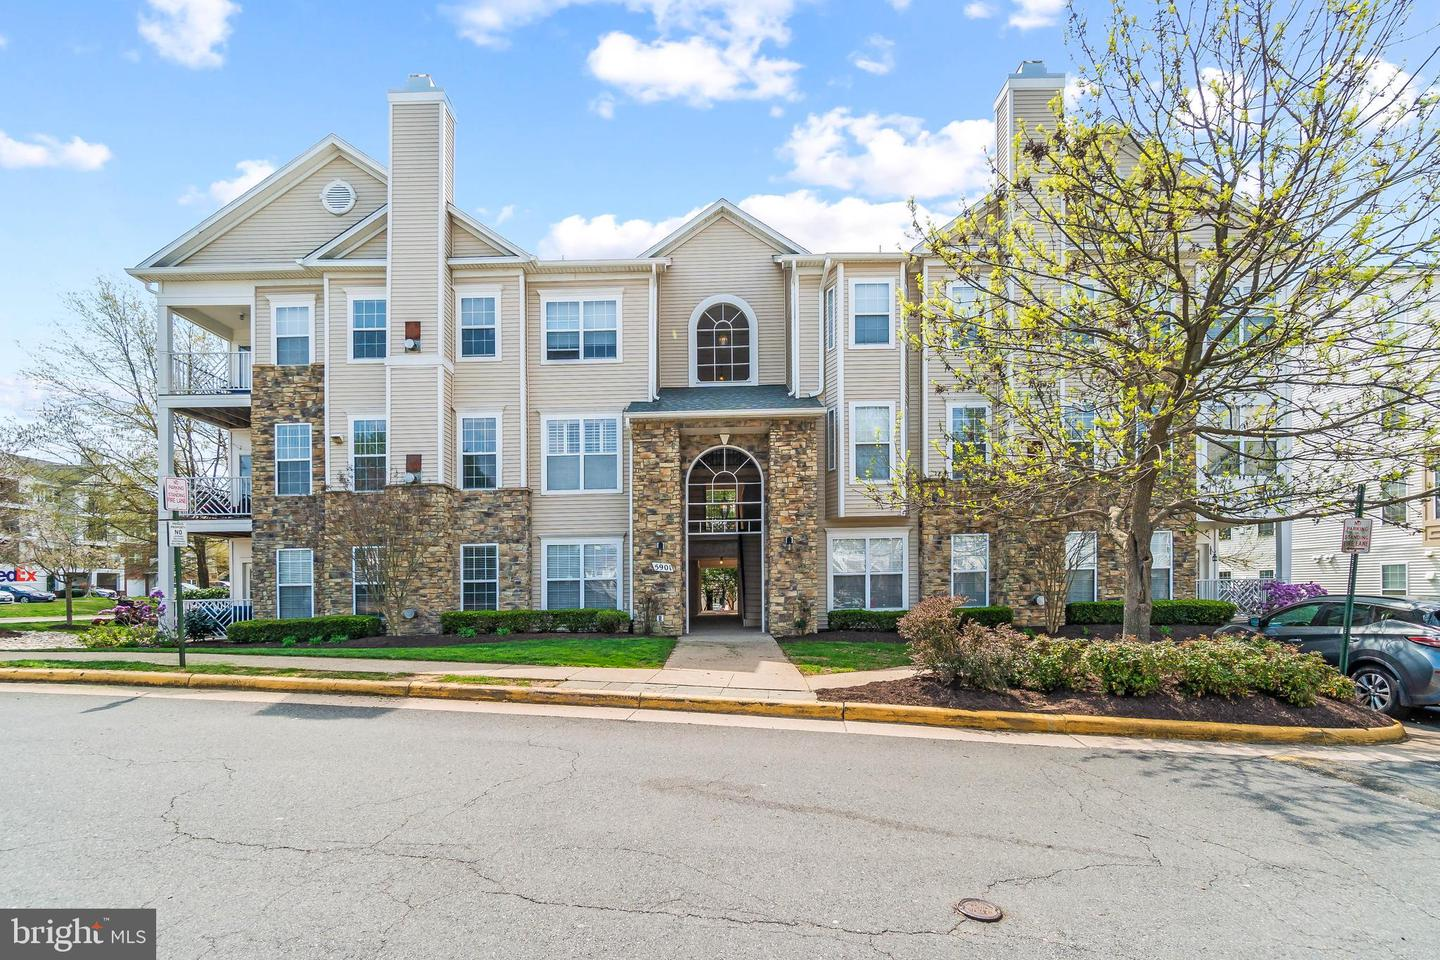 5901 FOUNDERS HILL DRIVE, ALEXANDRIA, Virginia 22310, 2 Bedrooms Bedrooms, ,2 BathroomsBathrooms,Residential,For Sale,Founders Walk Condos,FOUNDERS HILL,1,VAFX1191998